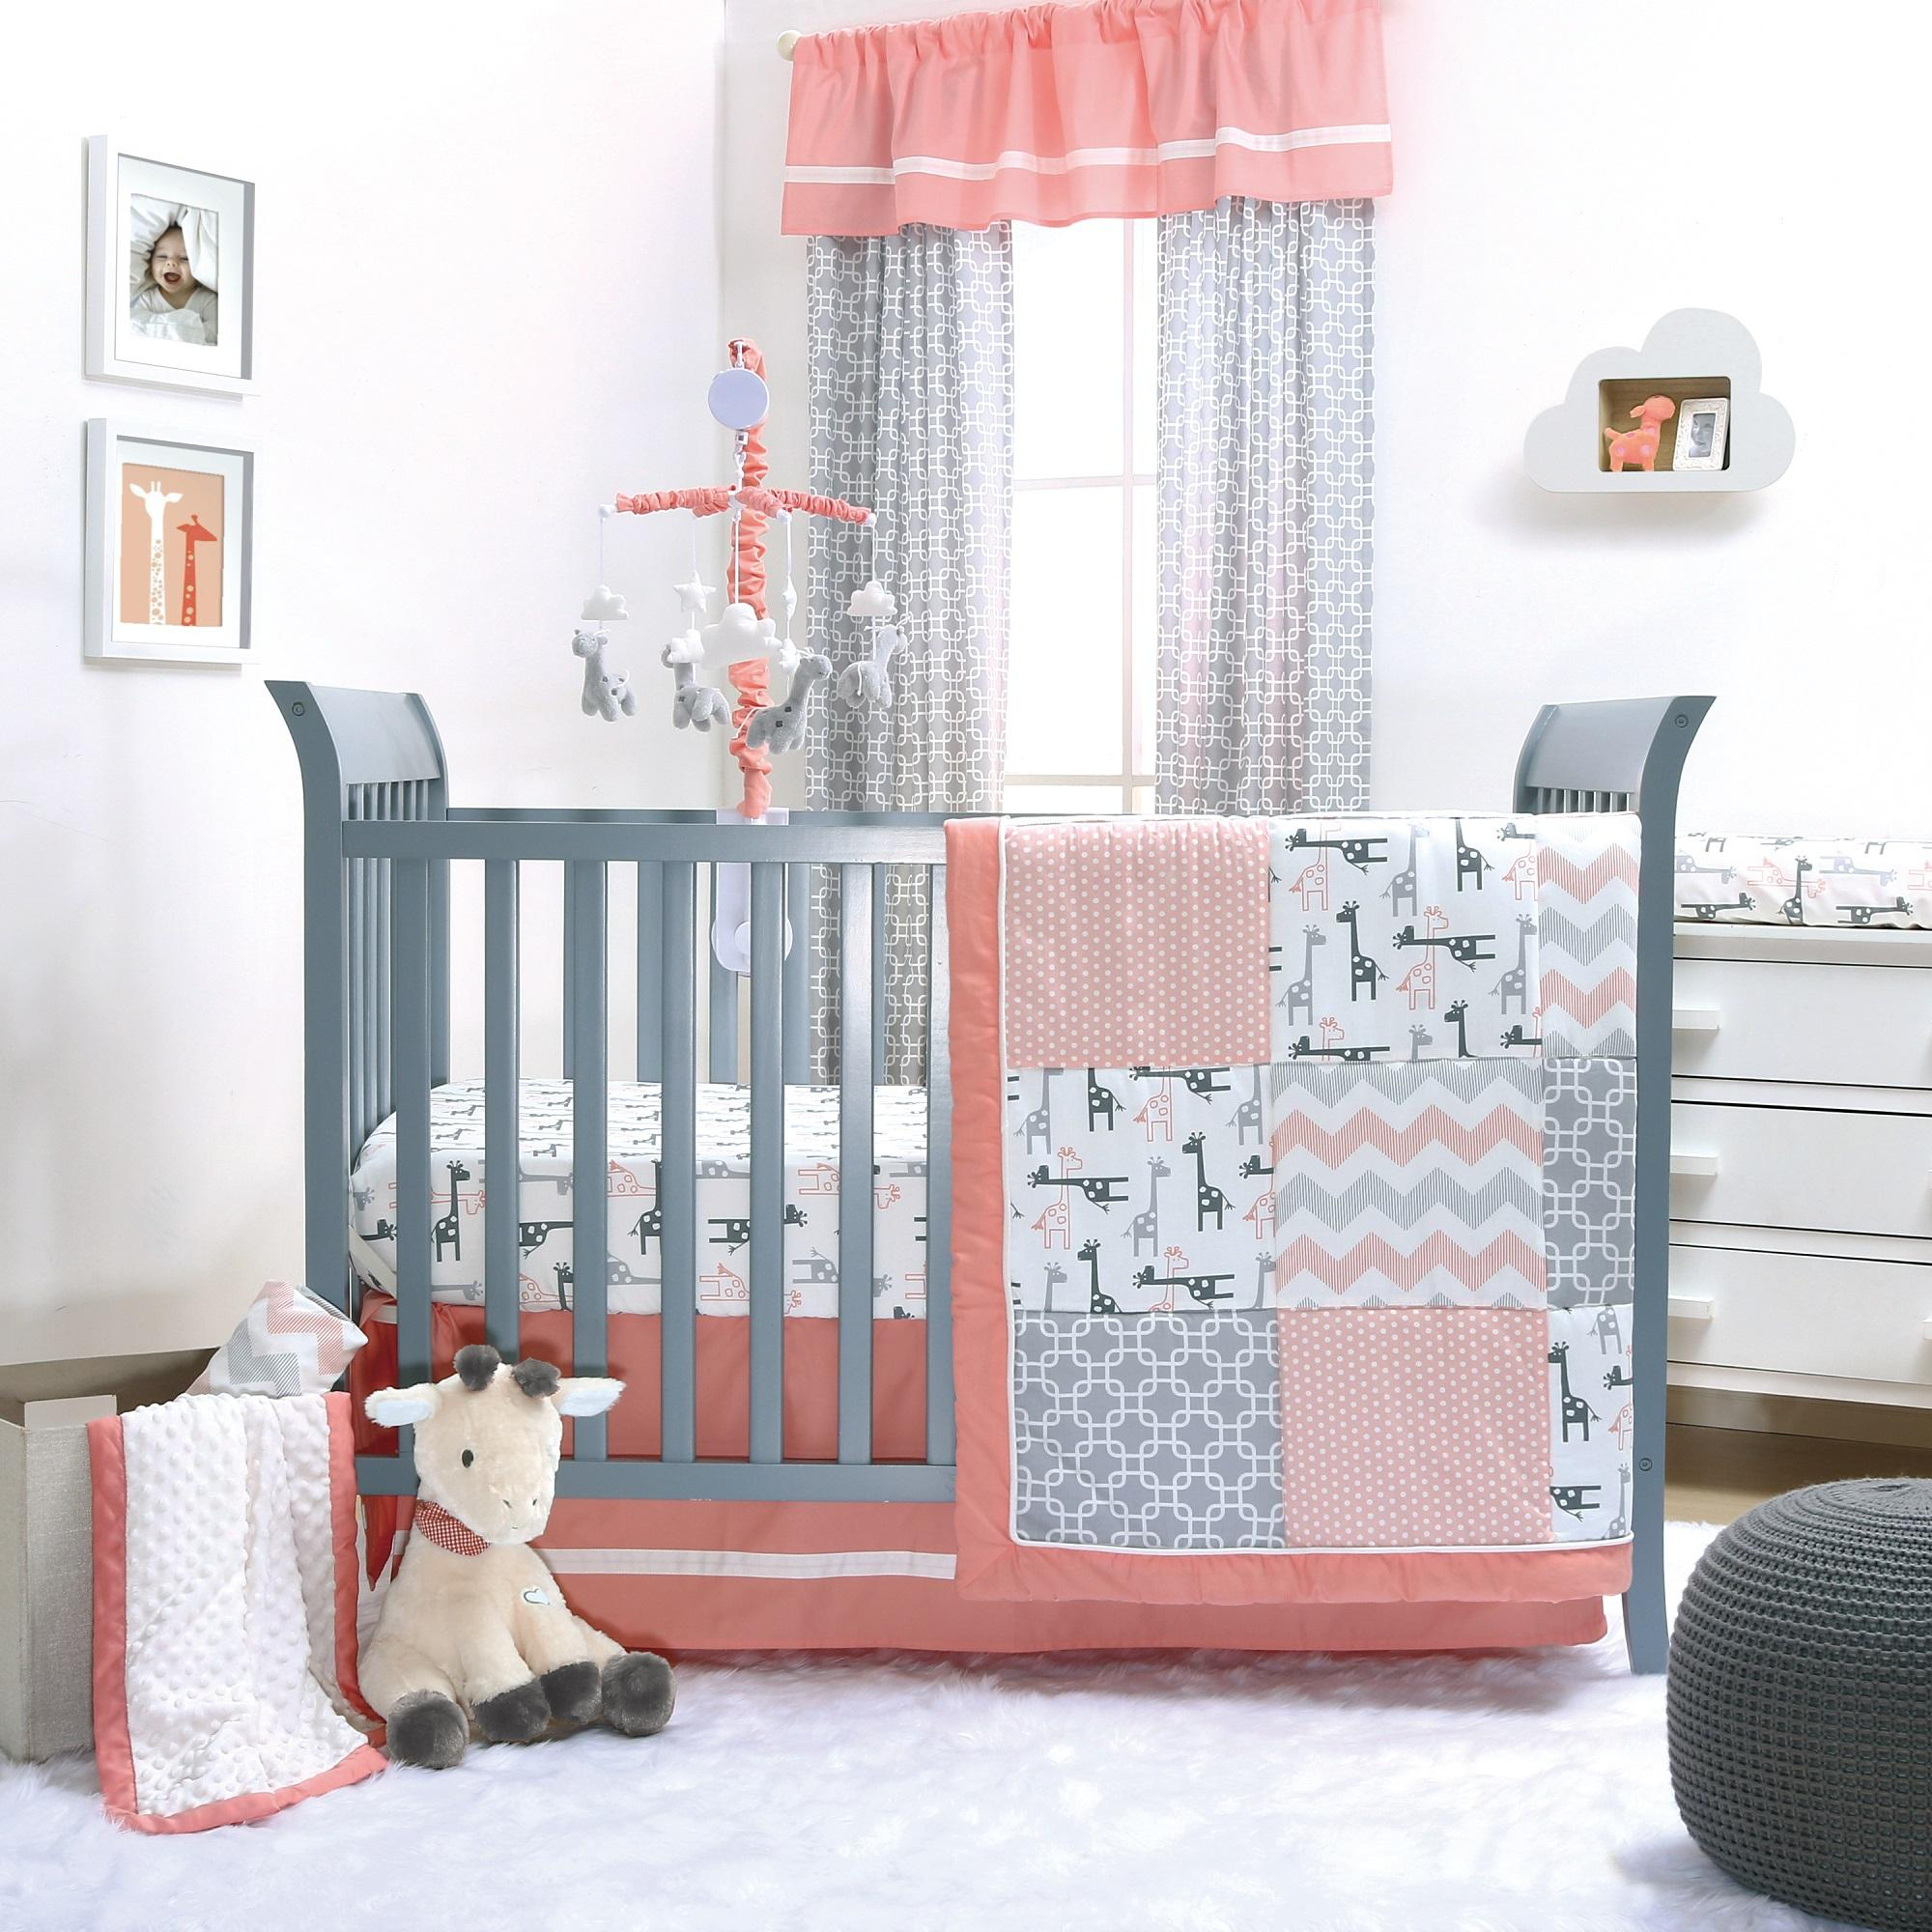 bed girl windows vintage peach baby white nursery metal decor pink bedding